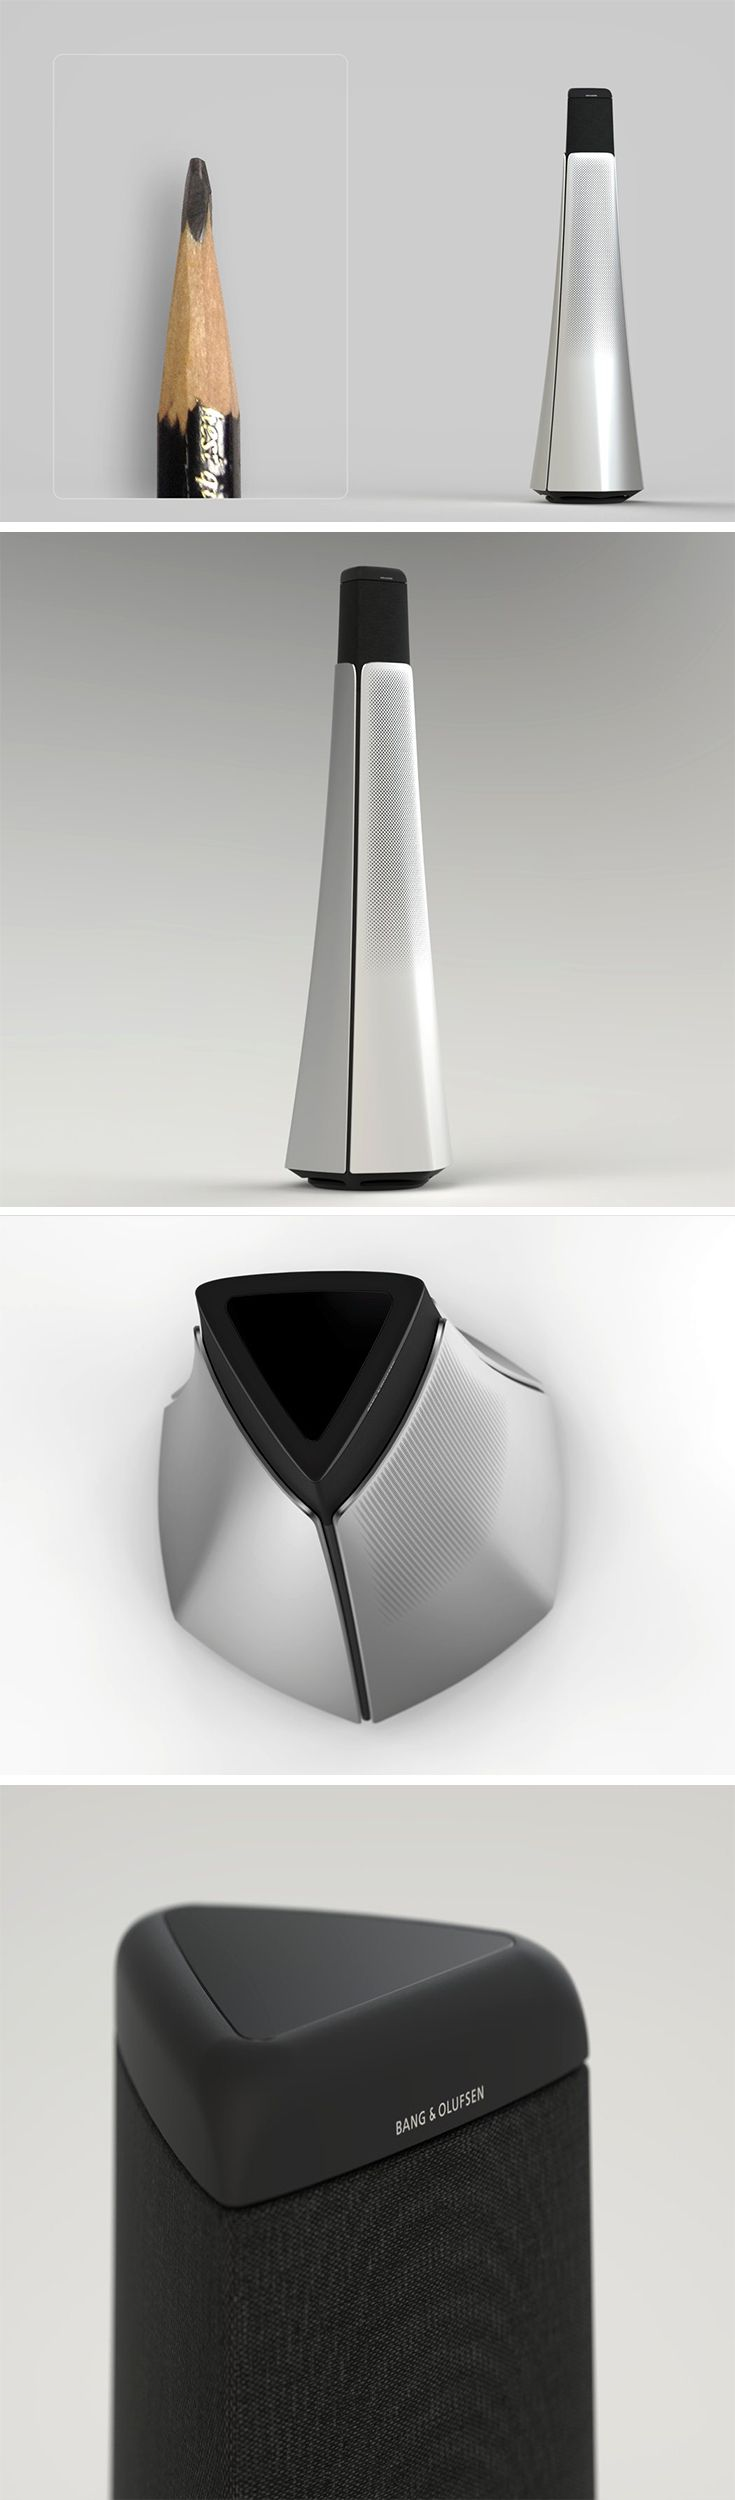 Designed as an homage to the pencil, the B&O Loudspeaker takes on the familiar form of the tip in an artistic, functional way. Like an old school knife-cut pencil, its hexagonal shape narrows gently from top to bottom. Though not immediately obvious to most, designers with a knack for drawing will recognize and appreciate this familiar fragment.